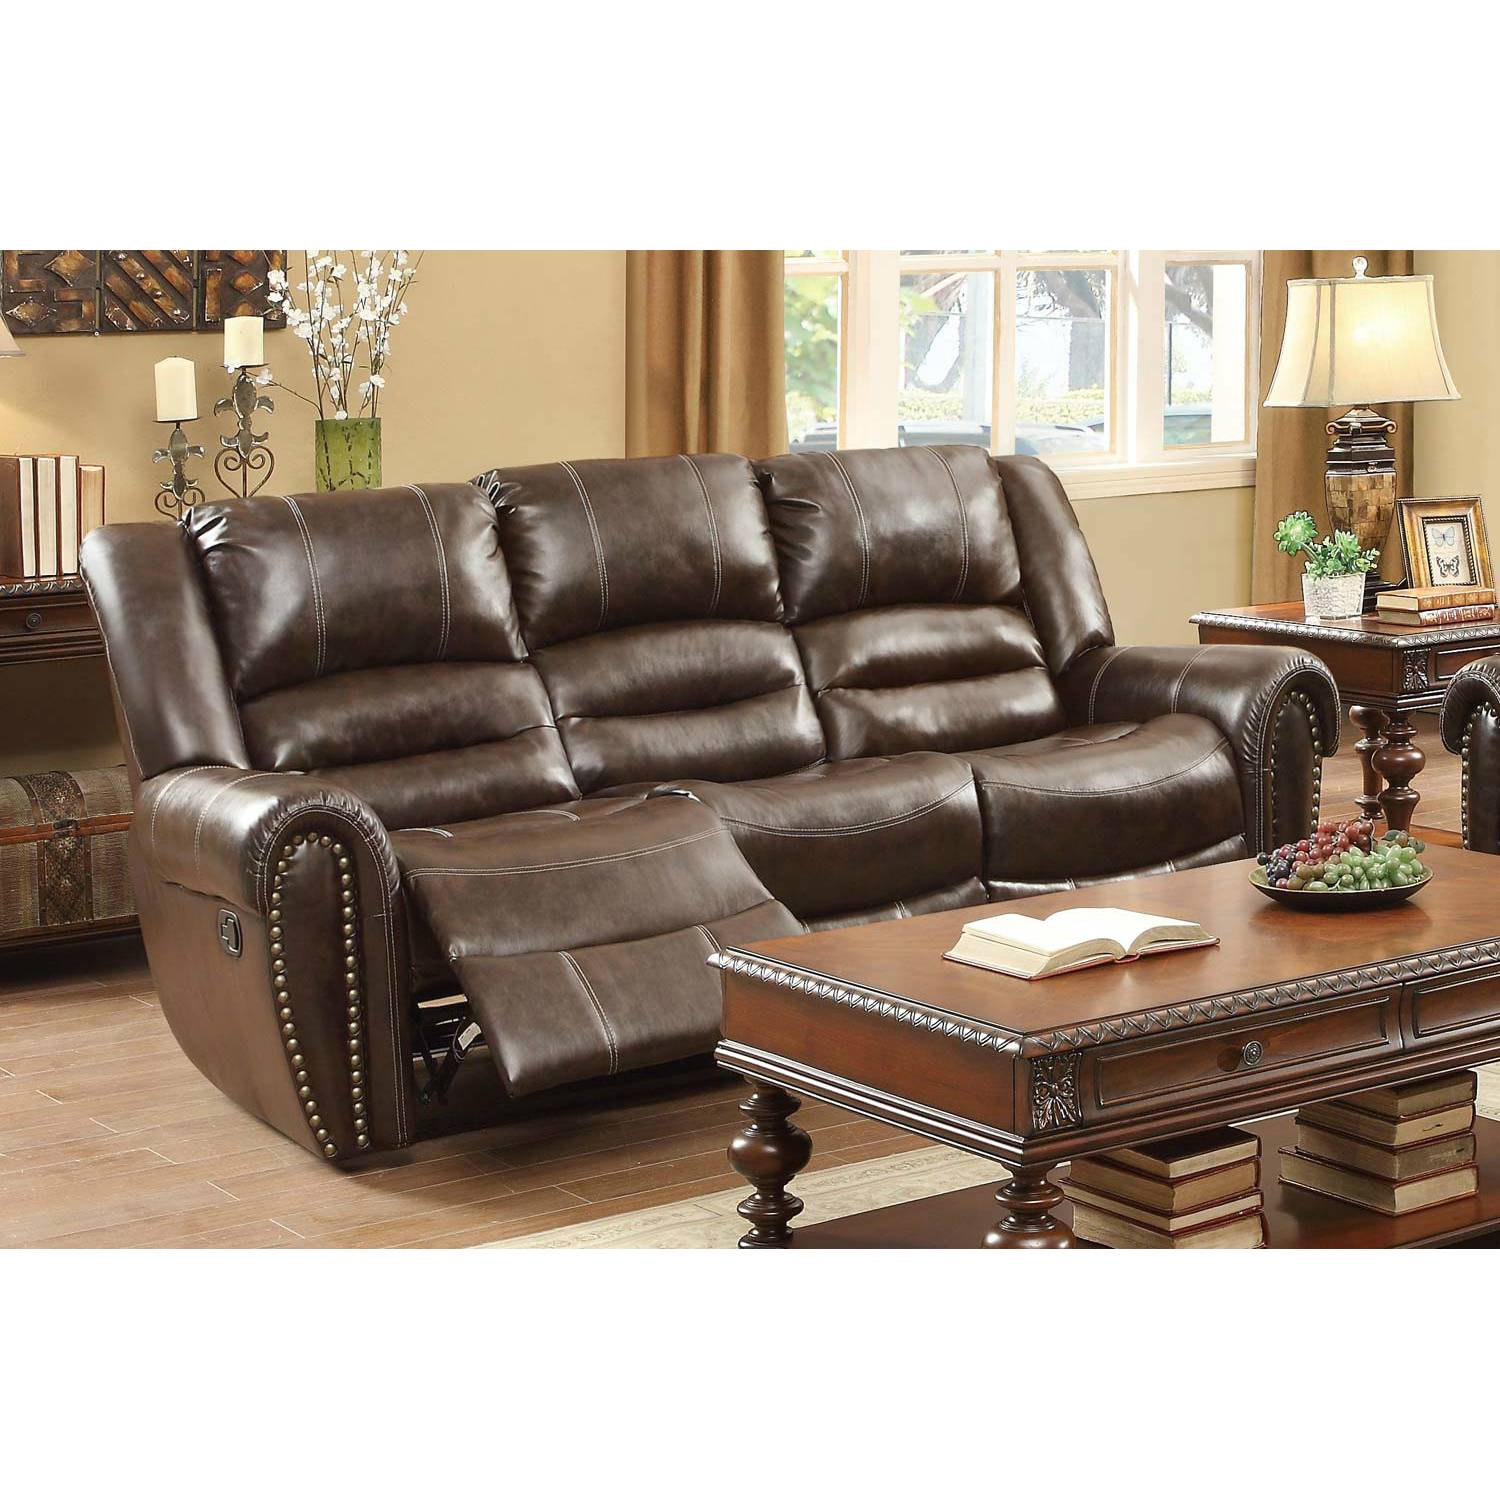 bonded leather reclining sofa set raymour and flanigan bed reviews center hill dark brown